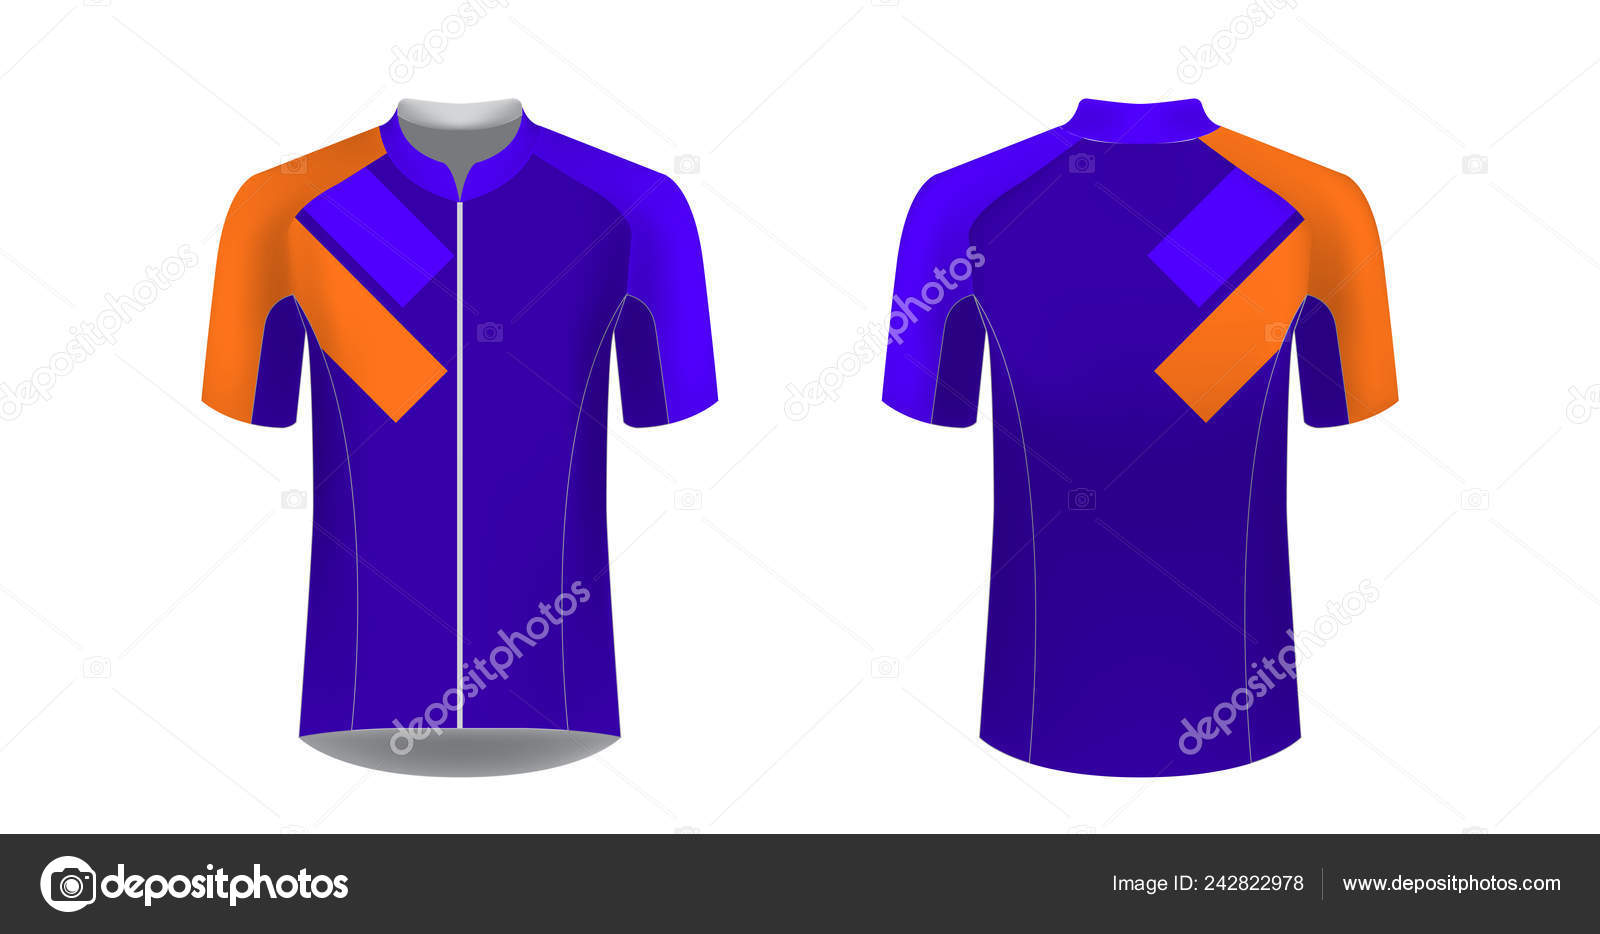 Cycling Uniform Templates Gaming Casual Clothing Concept Racing Stock Vector